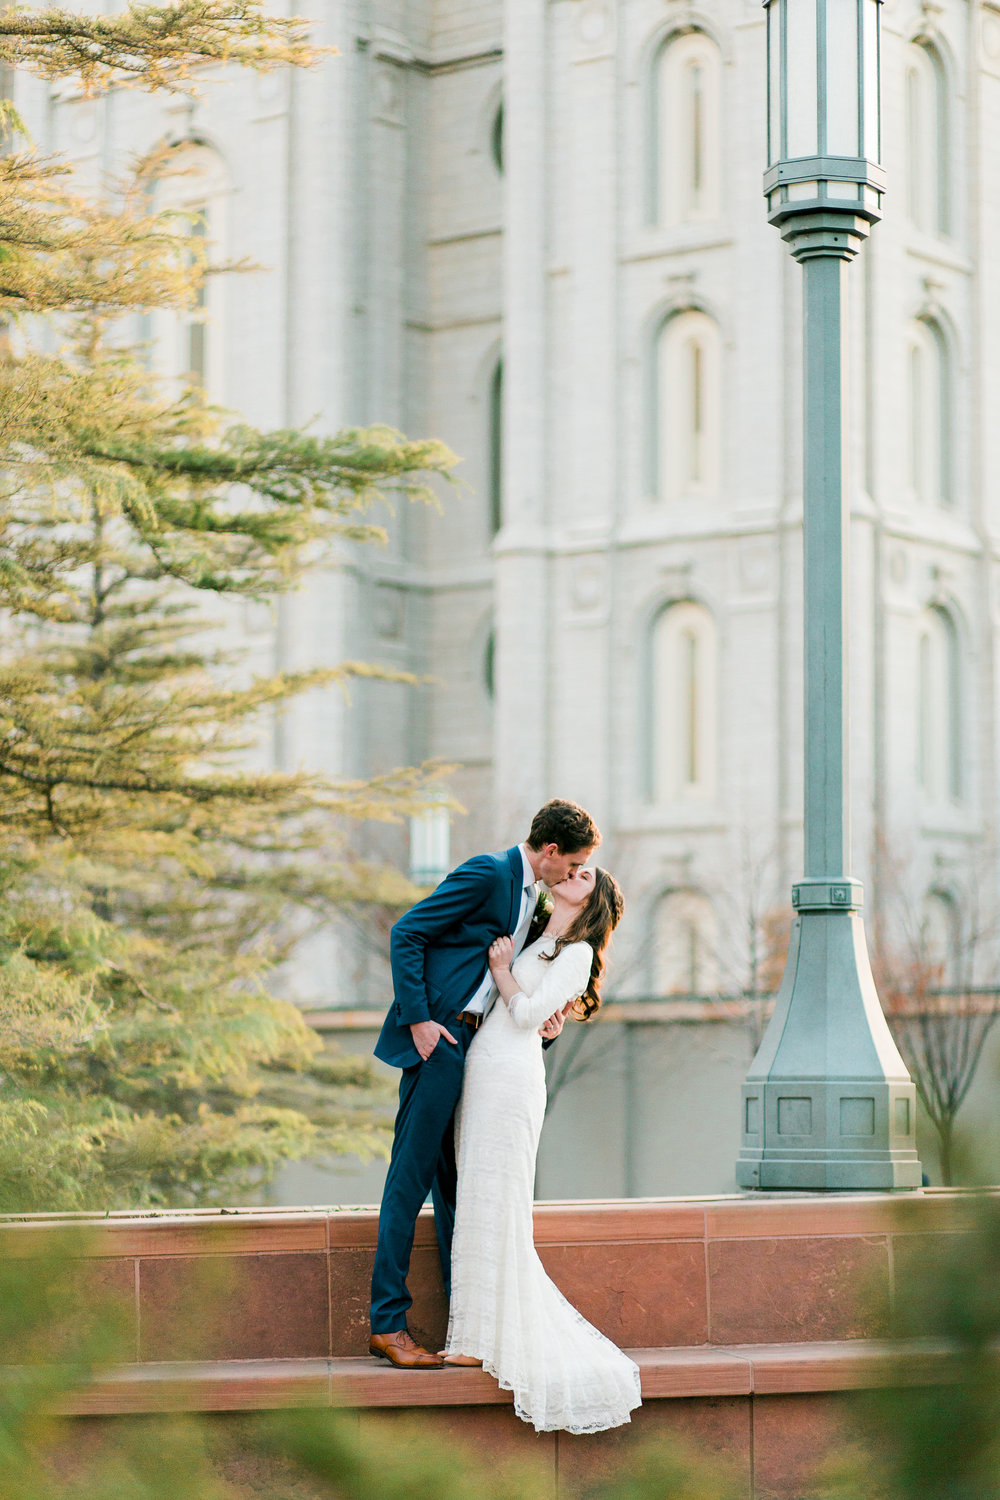 Eliza + Cody Bridals - Utah Wedding Photographer-65.jpg